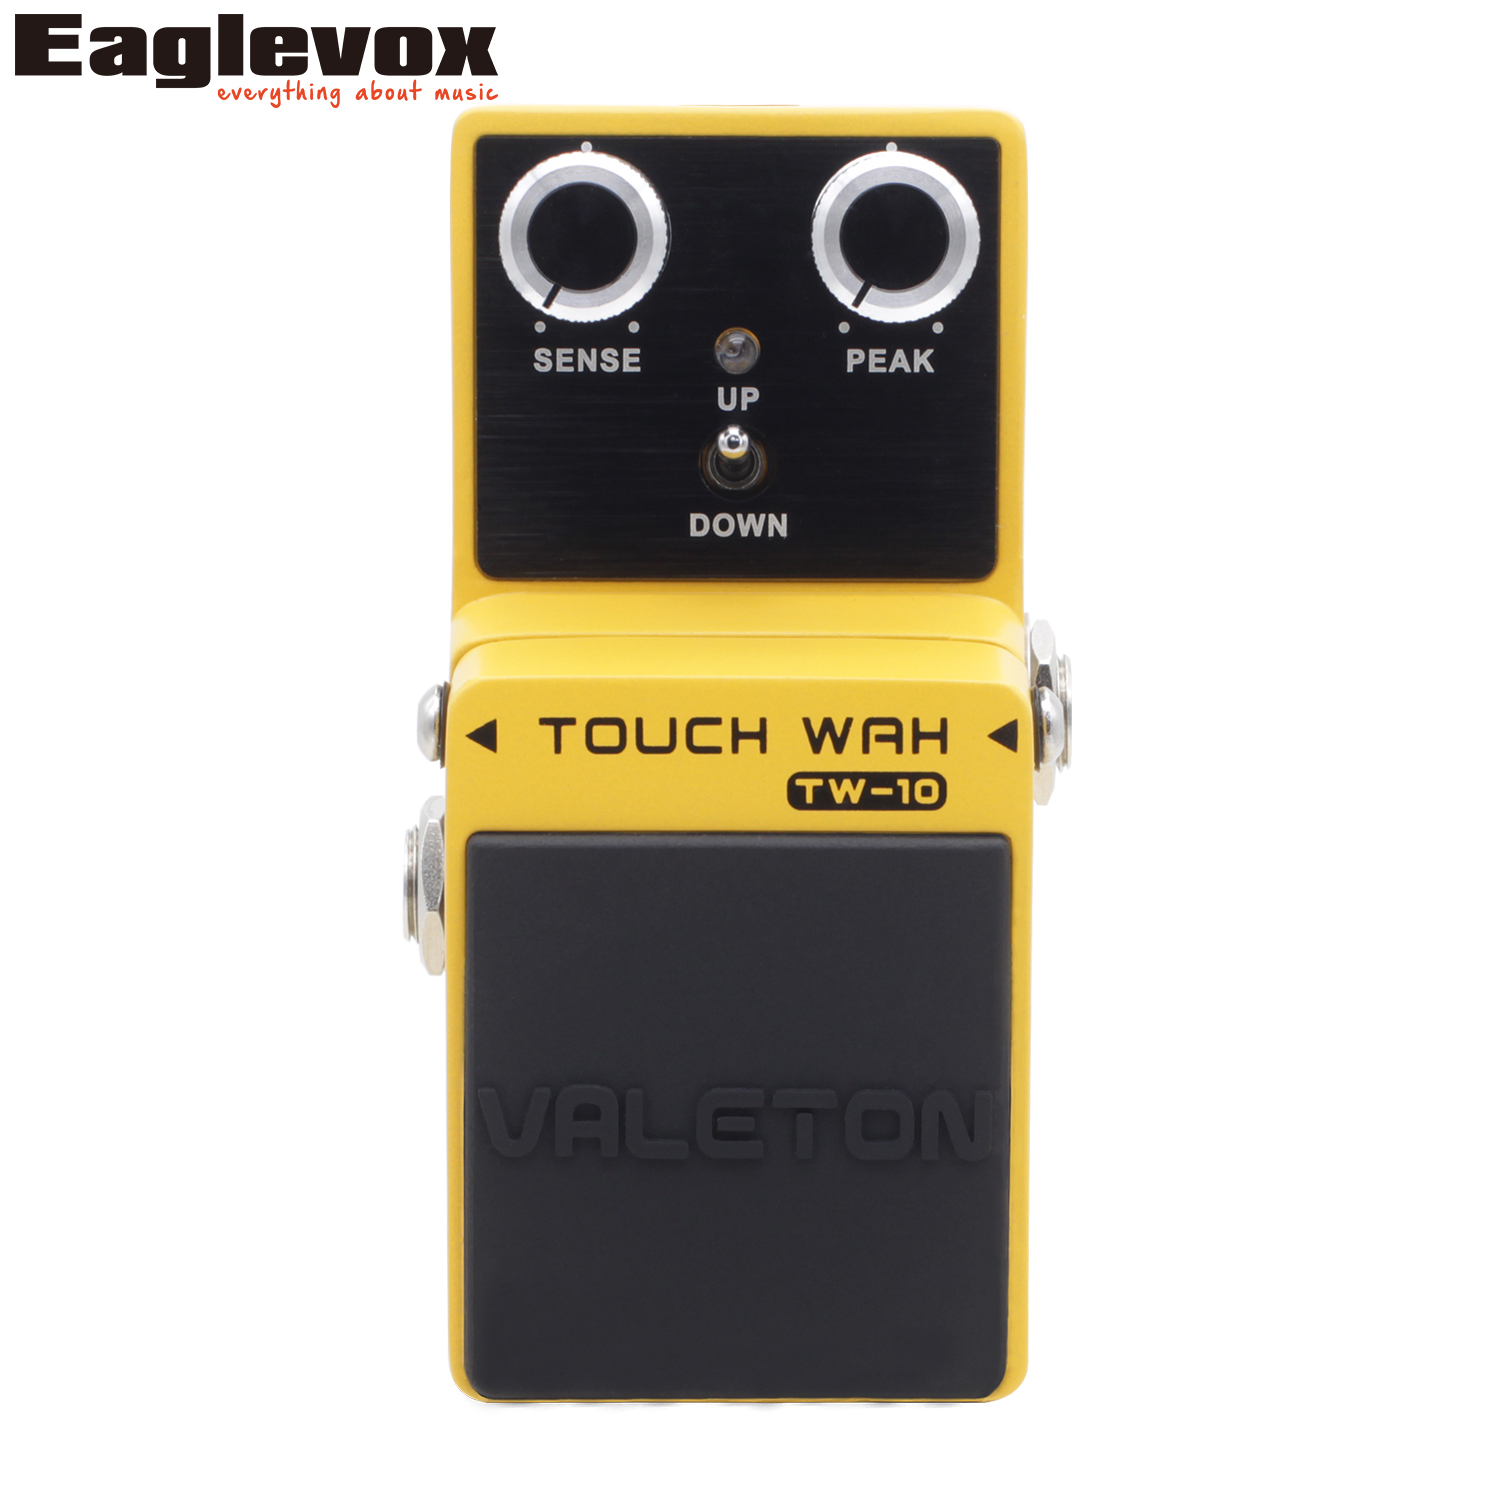 Valeton Touch Wah Guitar Effect Pedal Buffer Bypass Highly Accurate Analog Auto Wah Effects for Electric Guitar and Bass TW-10 valeton fet preamp pedal effect guitar effect fp 10